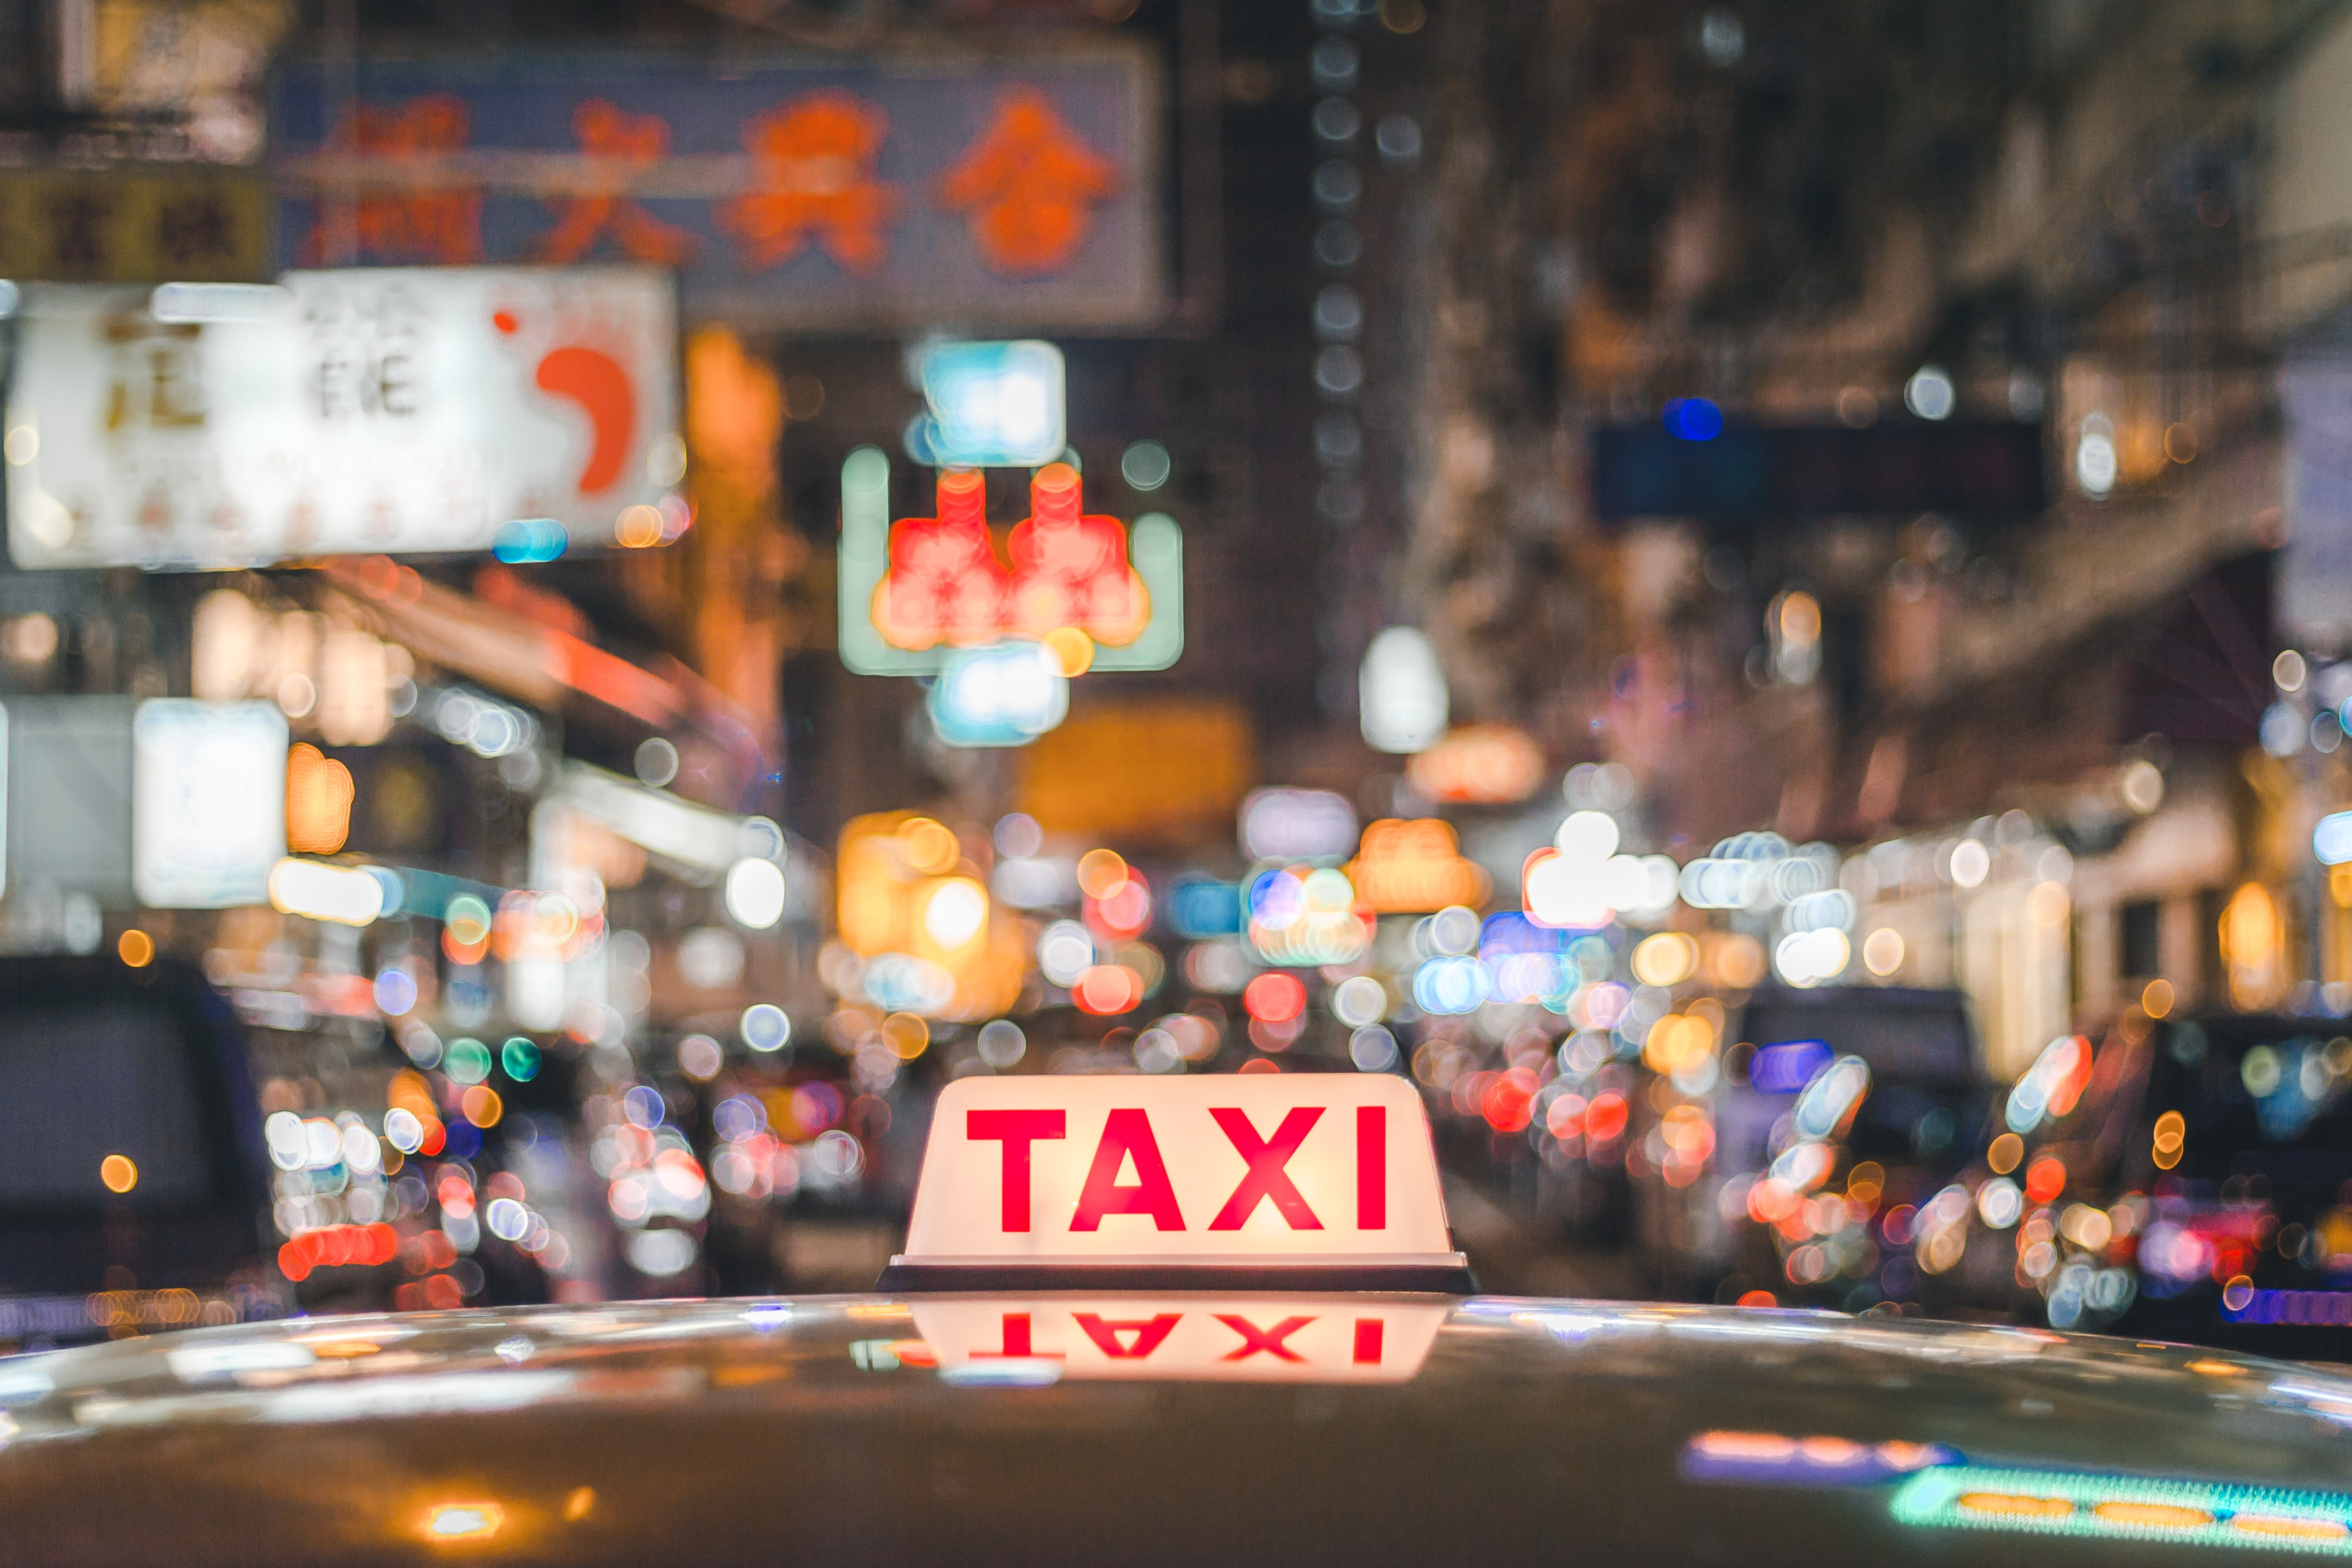 selective focus photo of red and white Taxi sign